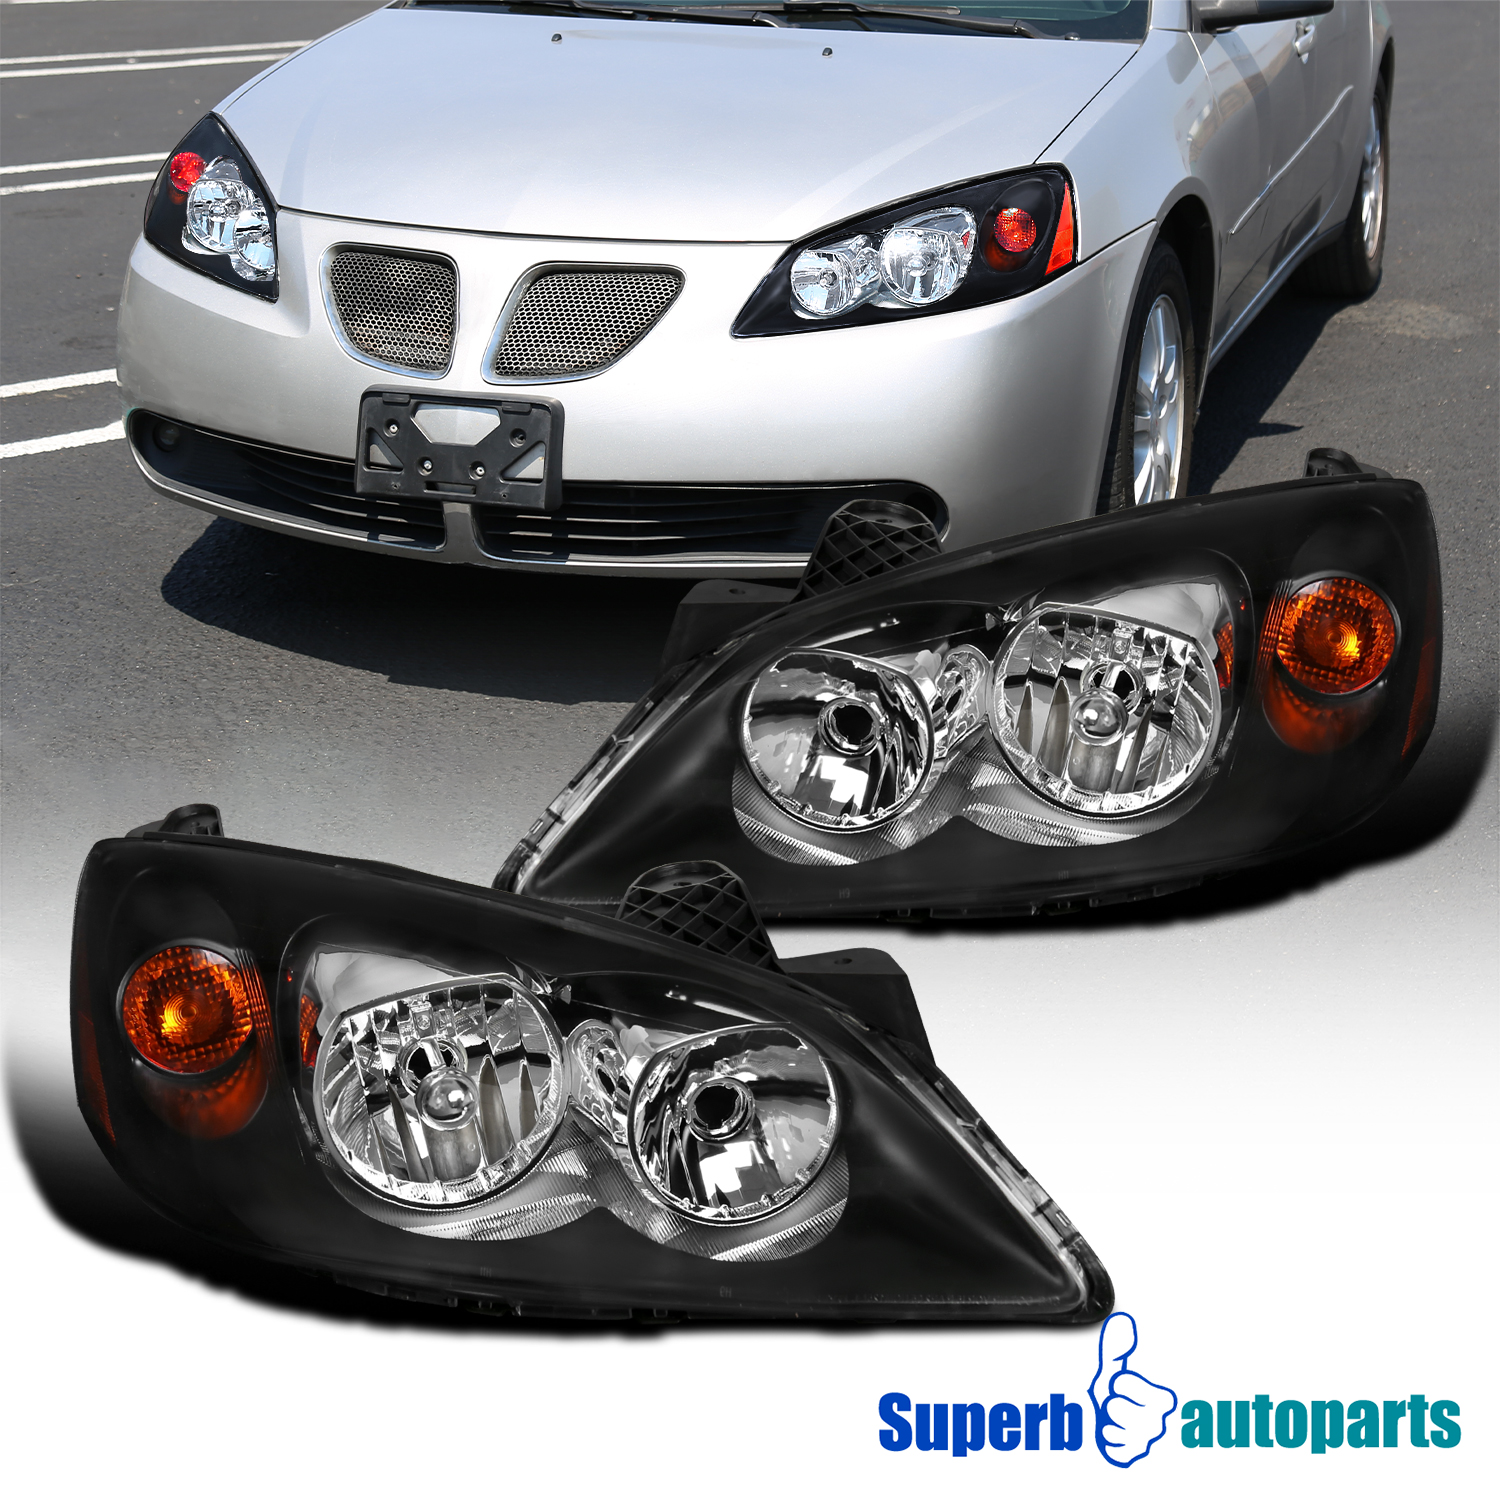 Details about 05-10 Pontiac G6 Black Headlights Replacement Turn Signal  Head Lamps Pair